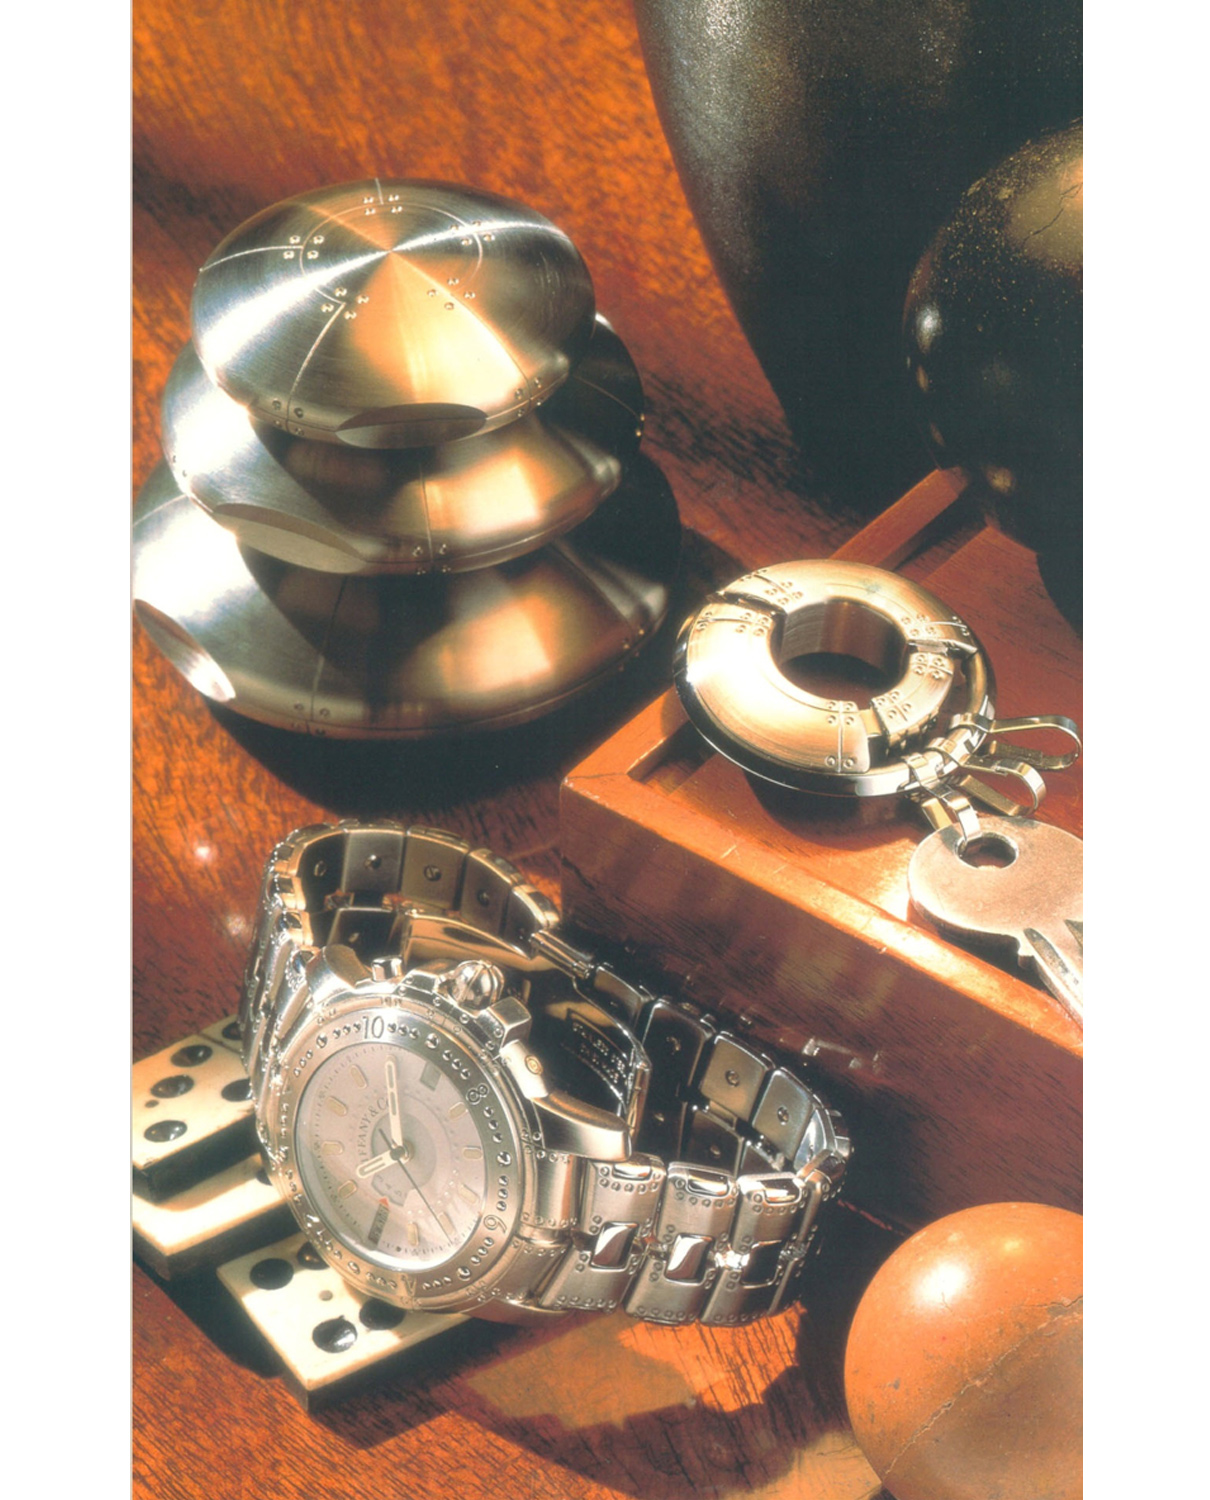 Loring's 1997 Book: Tiffany's 20th Century: A Portrait of American Style. Perisphere Nesting Boxes in three sizes, Porthole Keychain, and World Time Wristwatch with Stainless Steel Band.